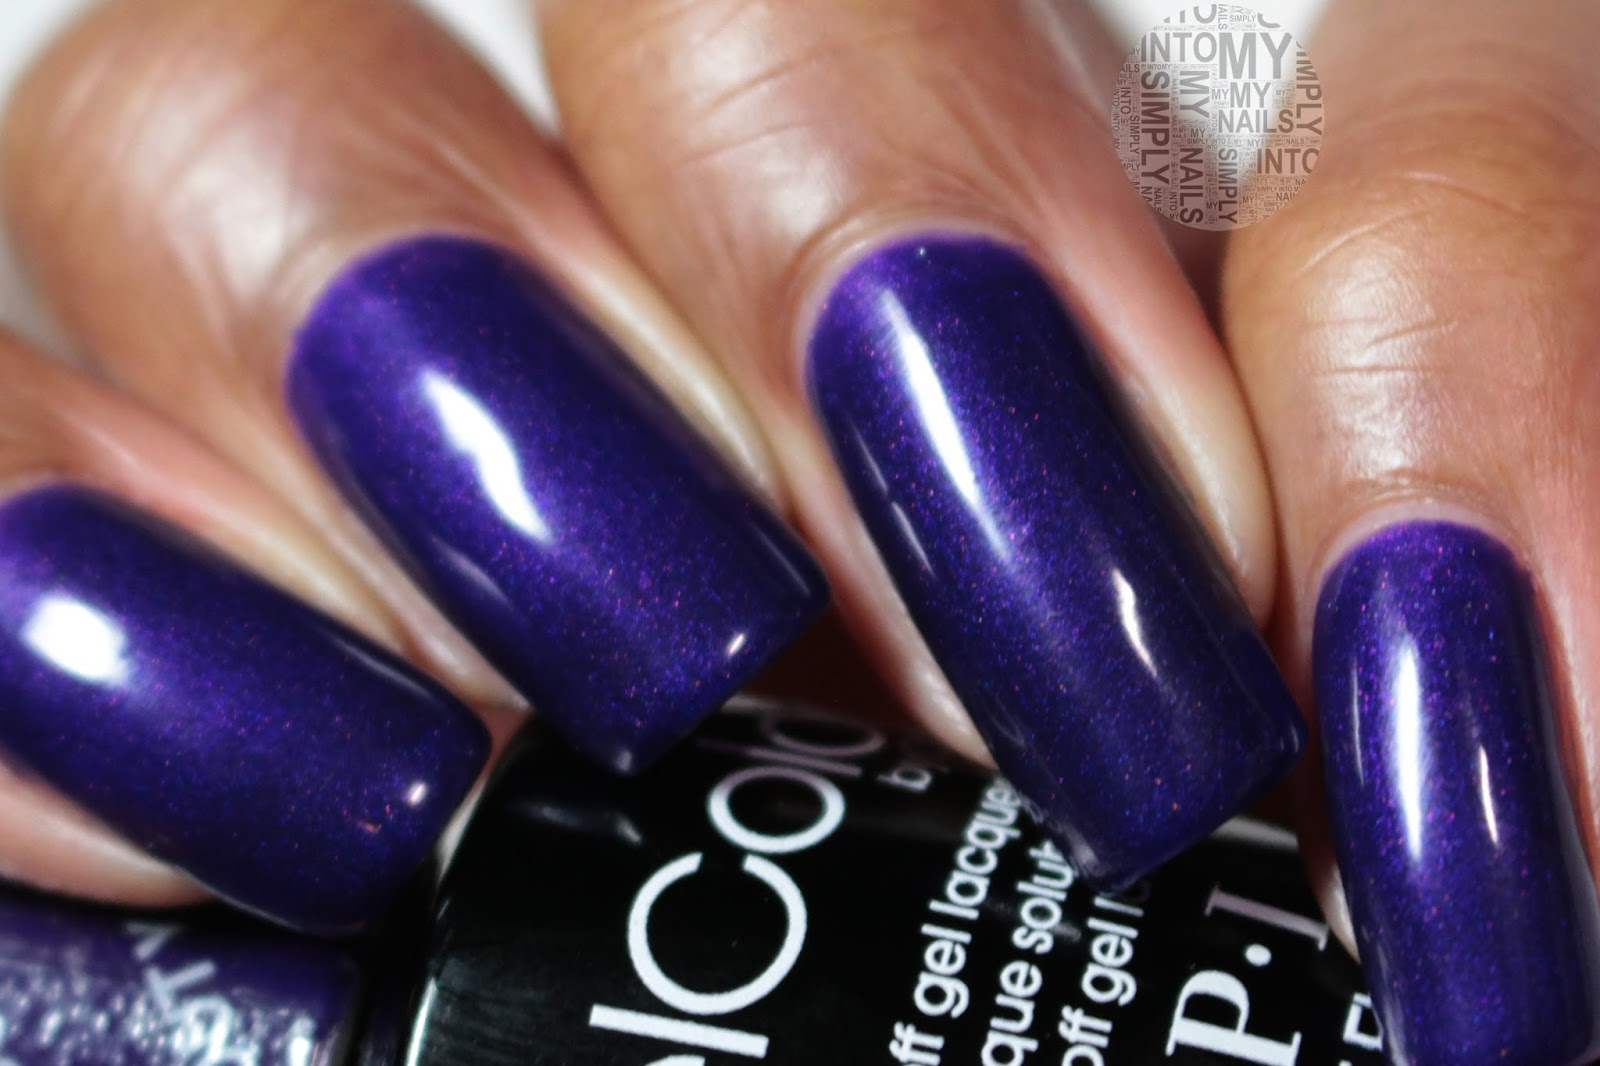 Mini Manicures ~ OPI Gelcolor I Carol About You | Simply Into My NAILS